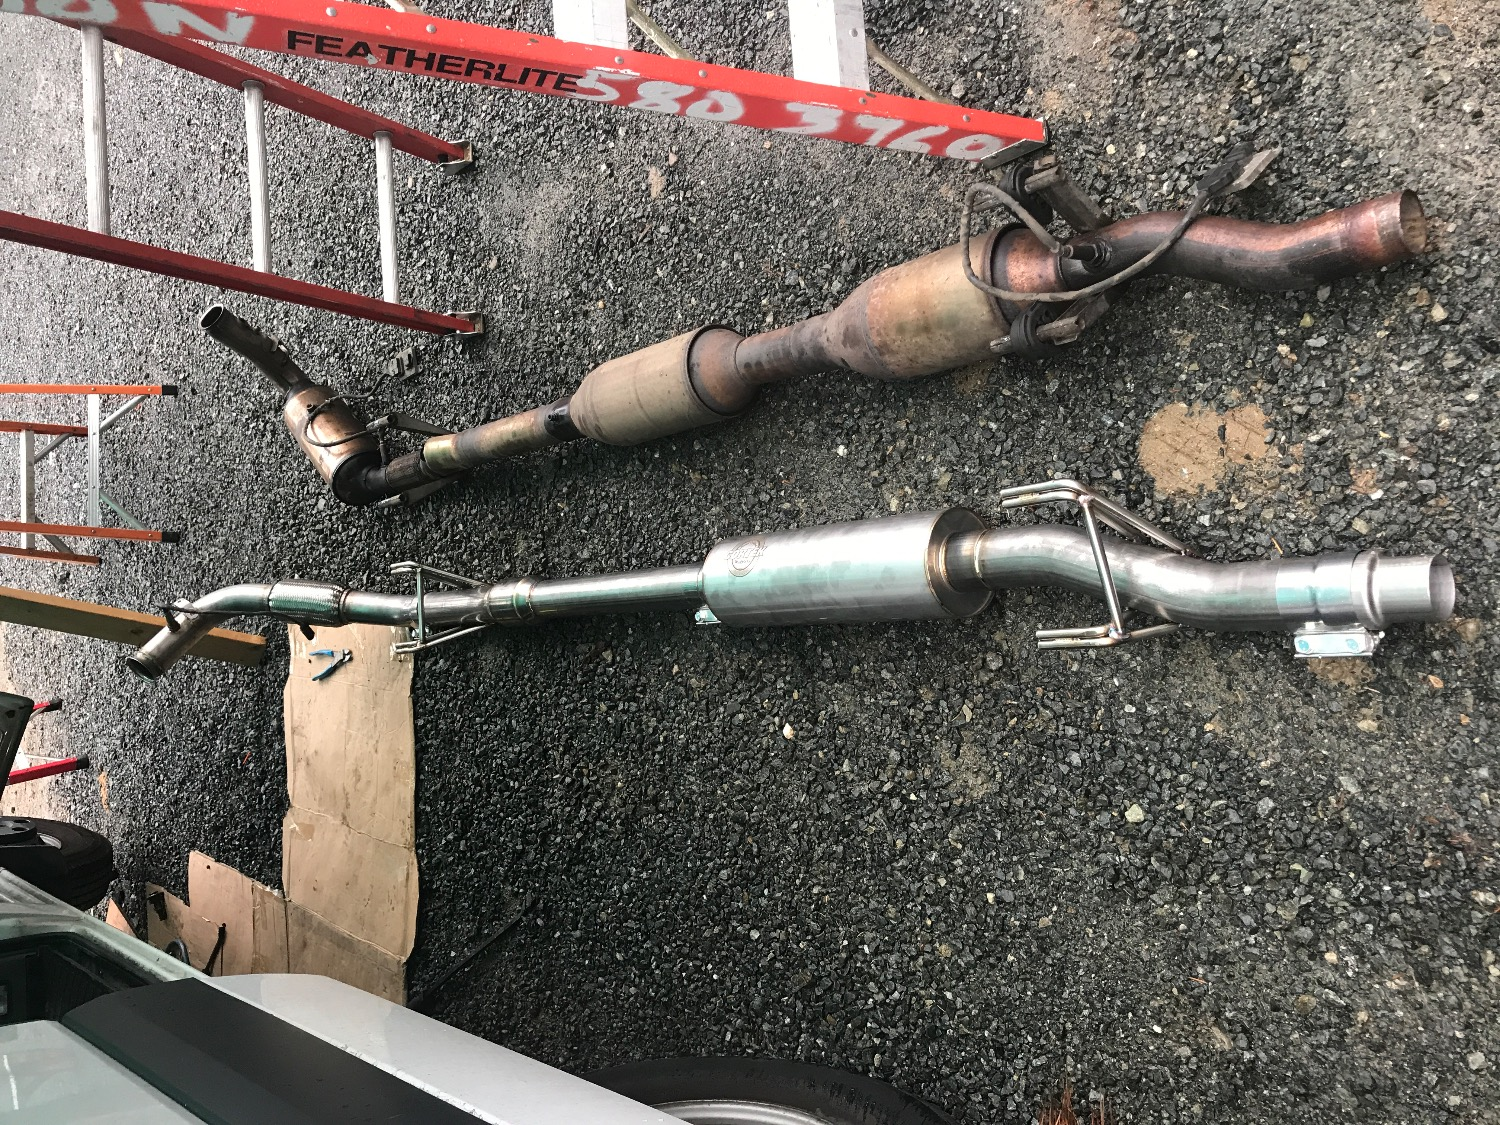 Mercedes Benz Sprinter 30l 2010 2018 Dpf Delete Kit Rawtek 2012 Fuel Filter Location My Experience What Awesome Super Fast Shipping Great Response To Questions The Exhaust Components Fit Perfectly It Was A Really Easy Install